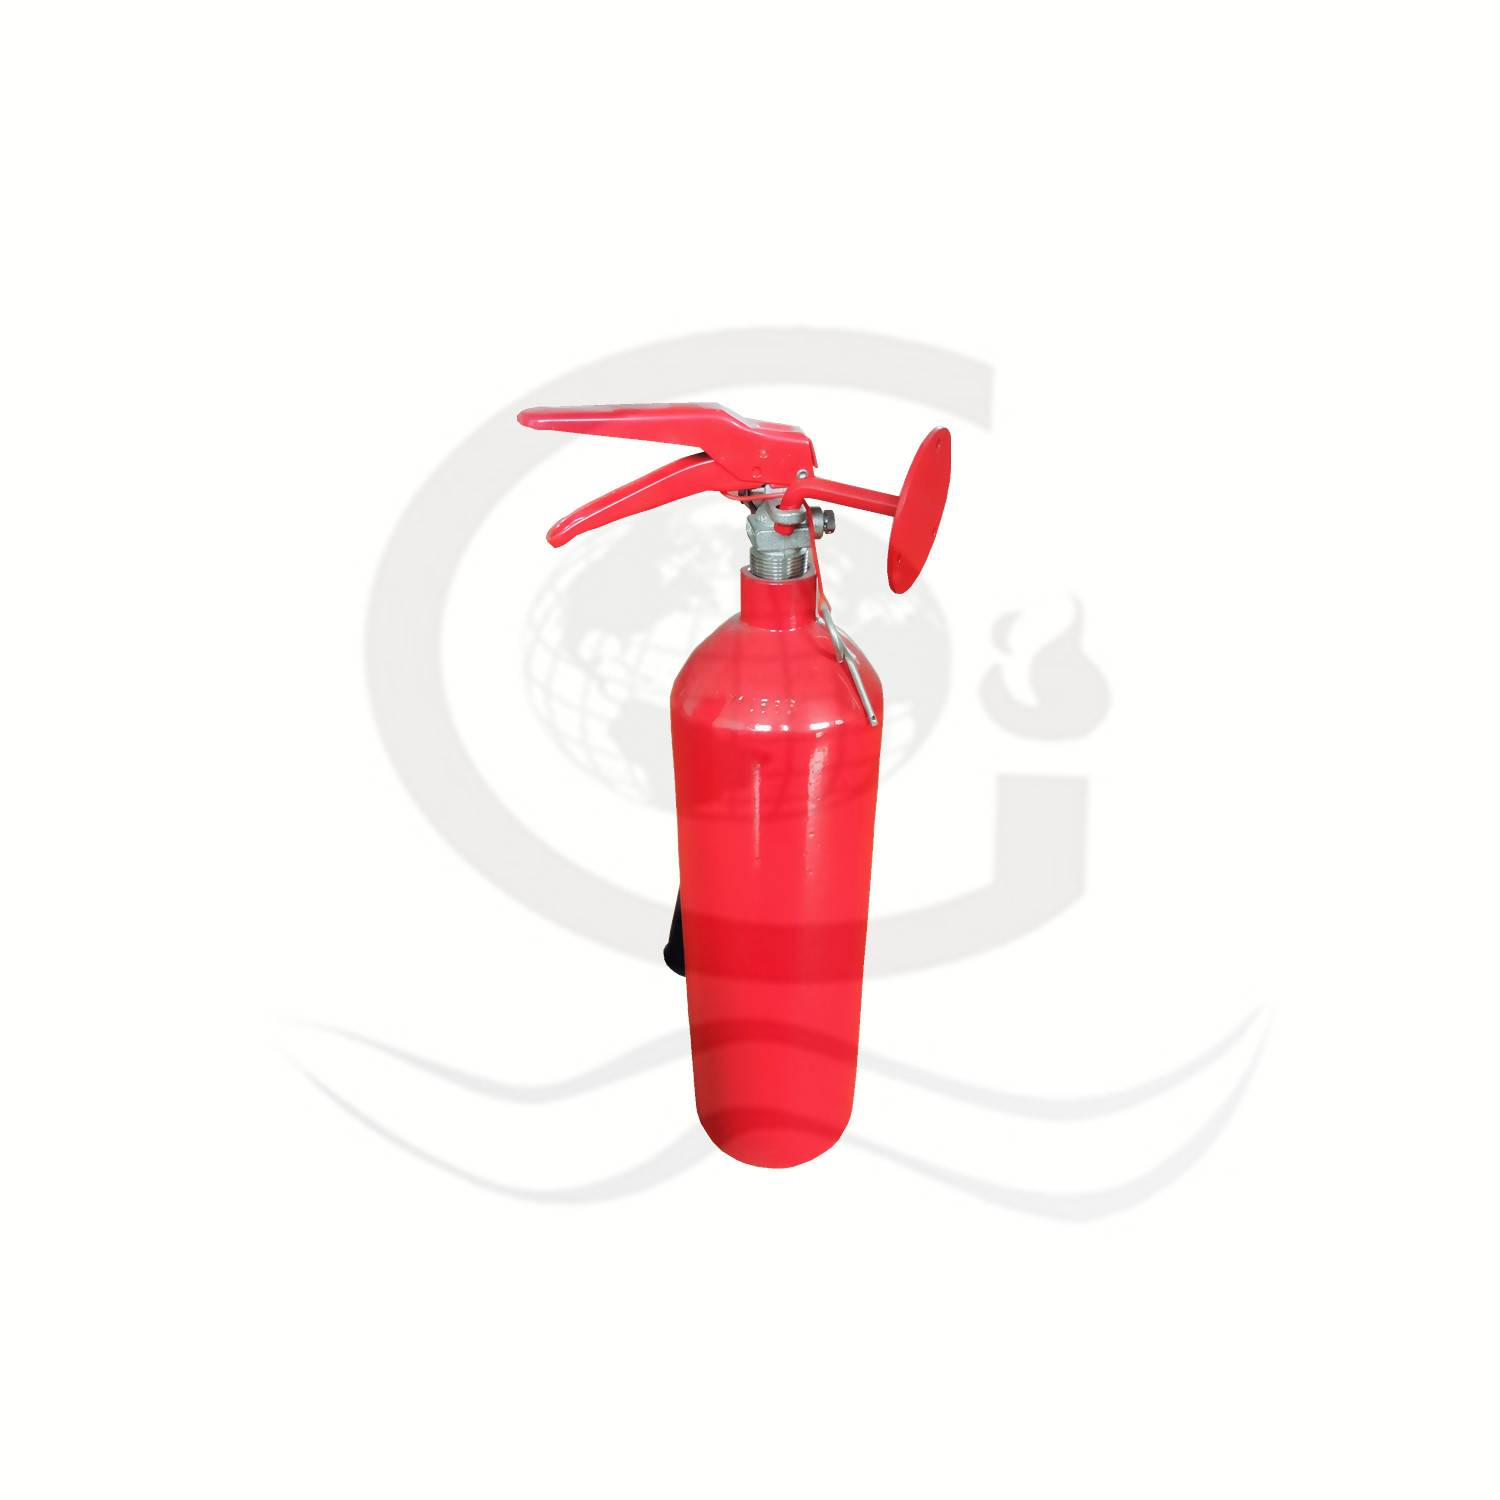 2020 wholesale price Bs Fire Hydrant Bs750 - Co2 fire extinguisher  – World Fire Fighting Equipment detail pictures